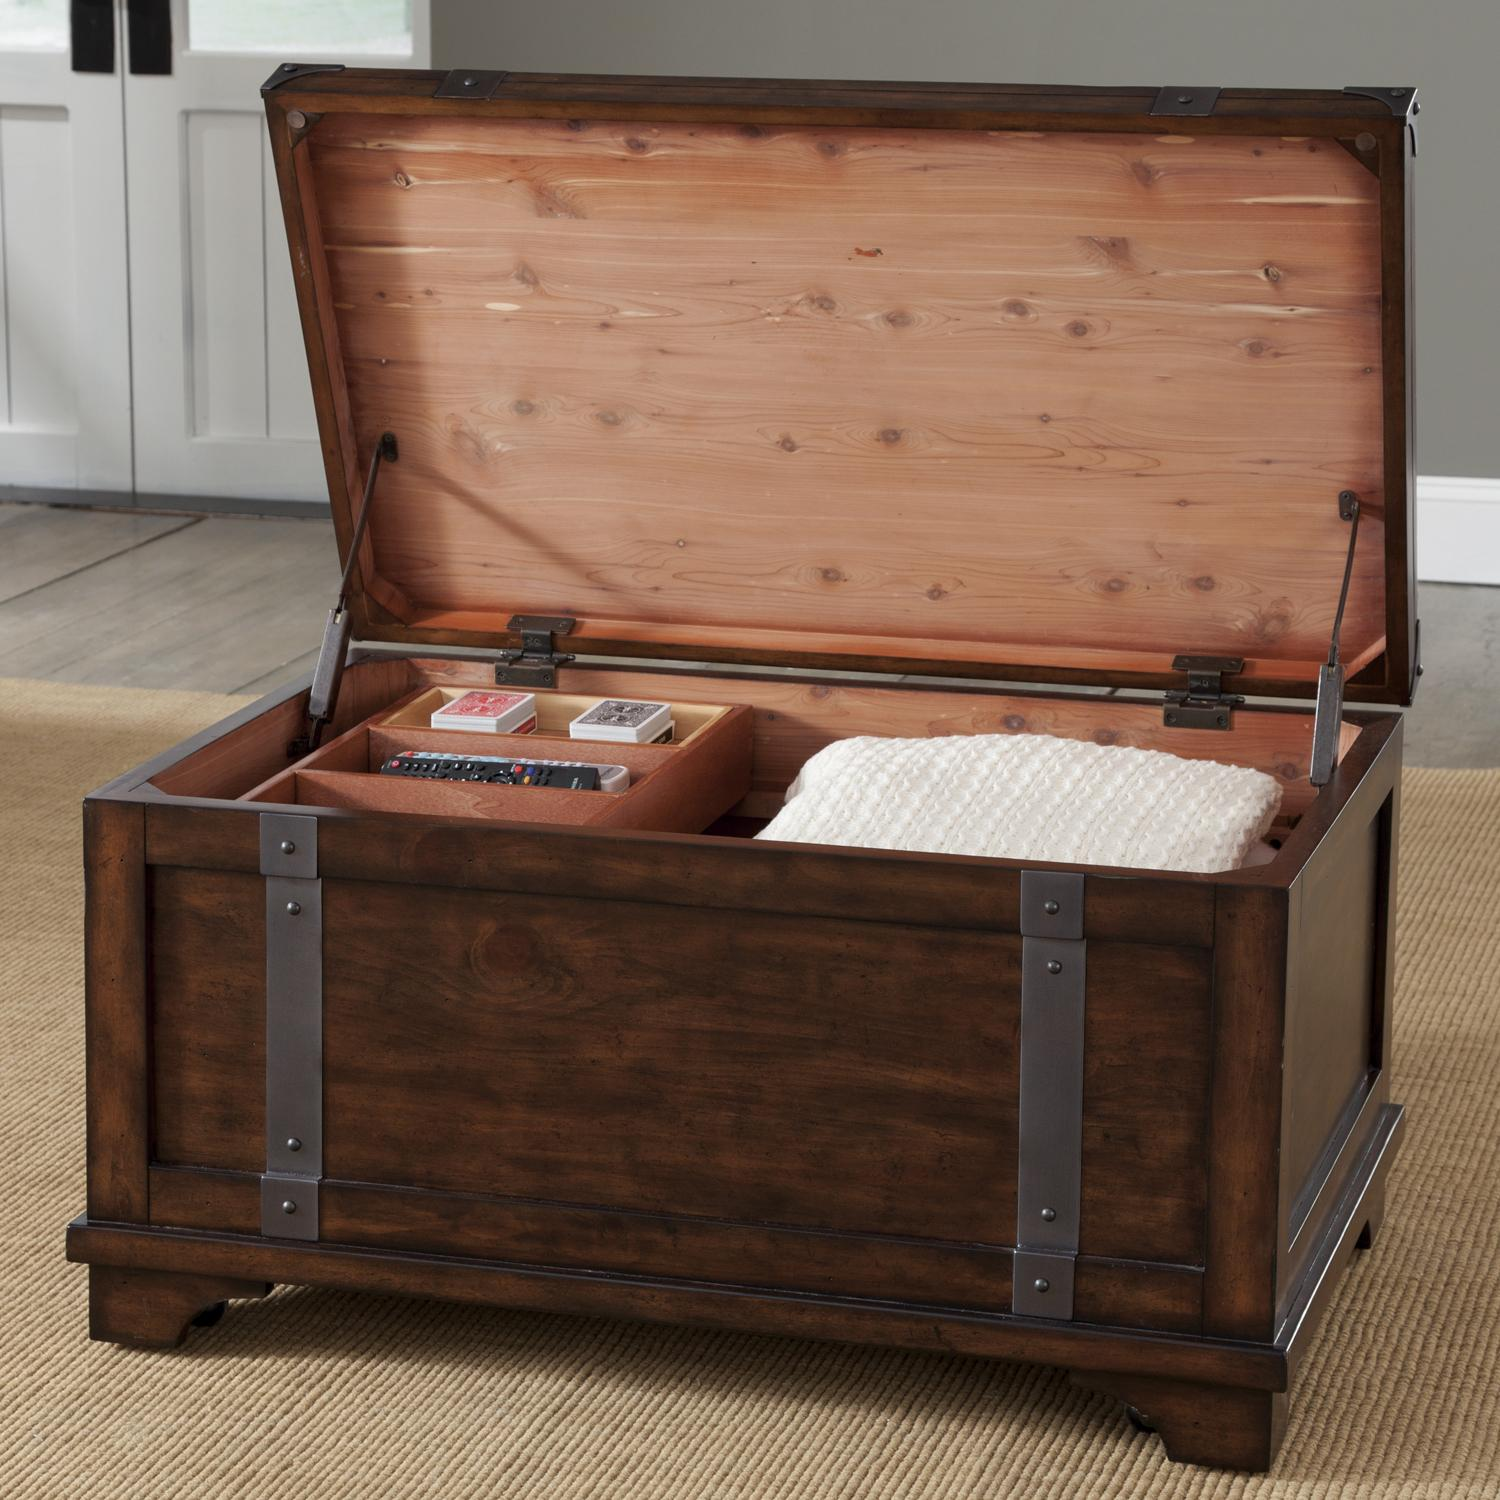 liberty furniture aspen skies industrial casual storage trunk with removable storage box. Black Bedroom Furniture Sets. Home Design Ideas